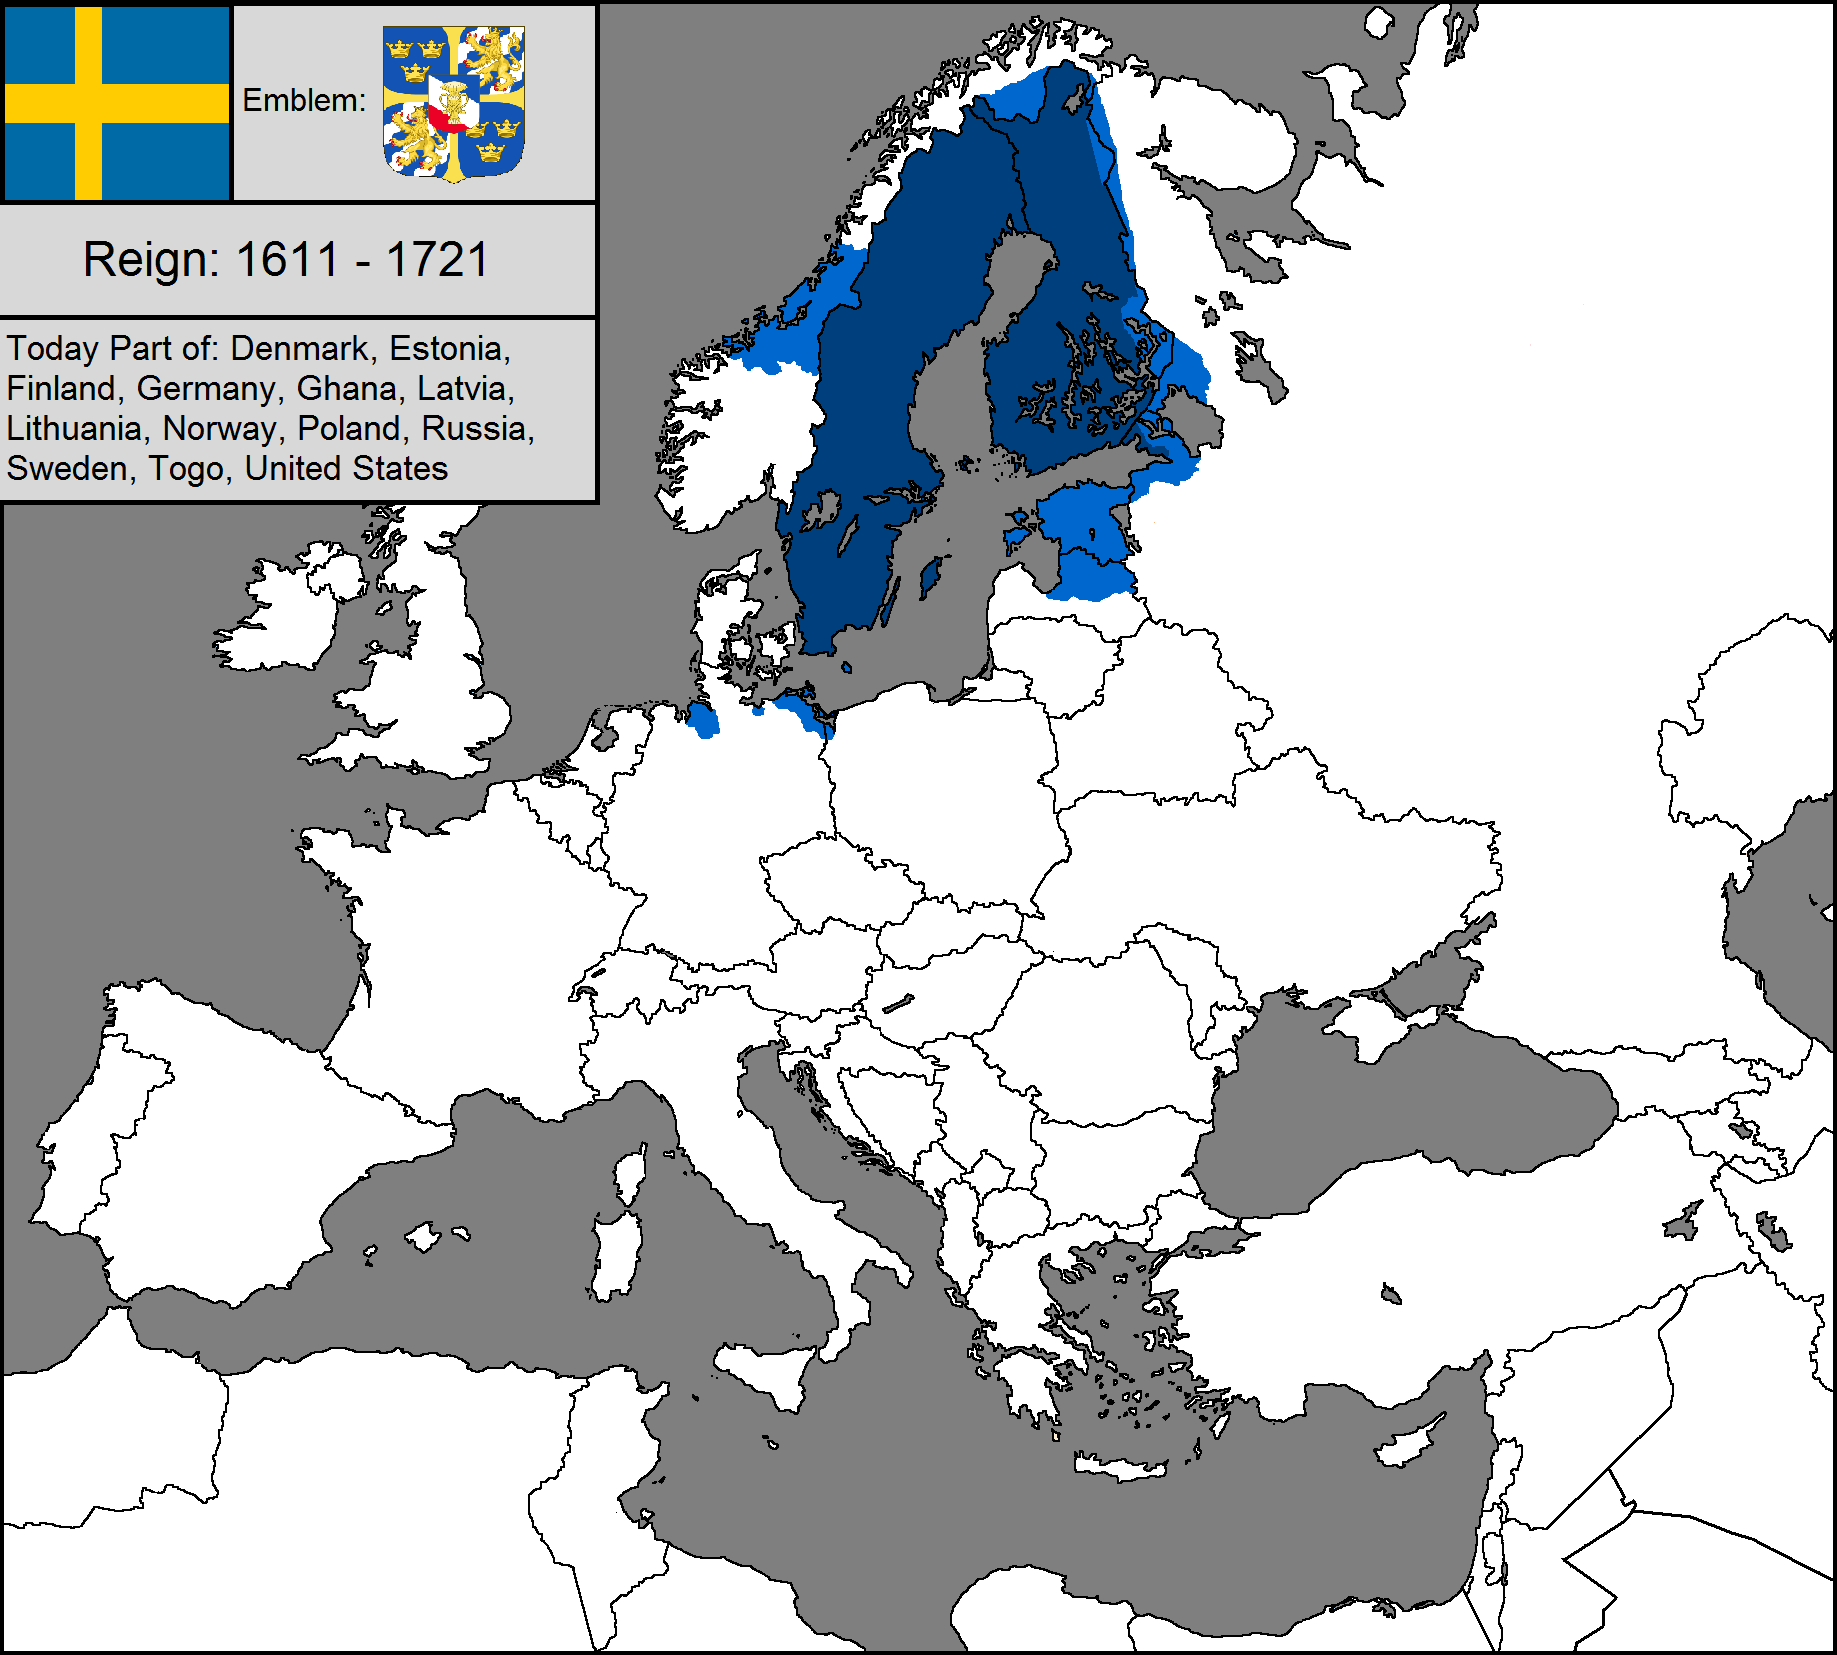 Image Blank Map Of The Swedish Empirepng TheFutureOfEuropes - Sweden map blank